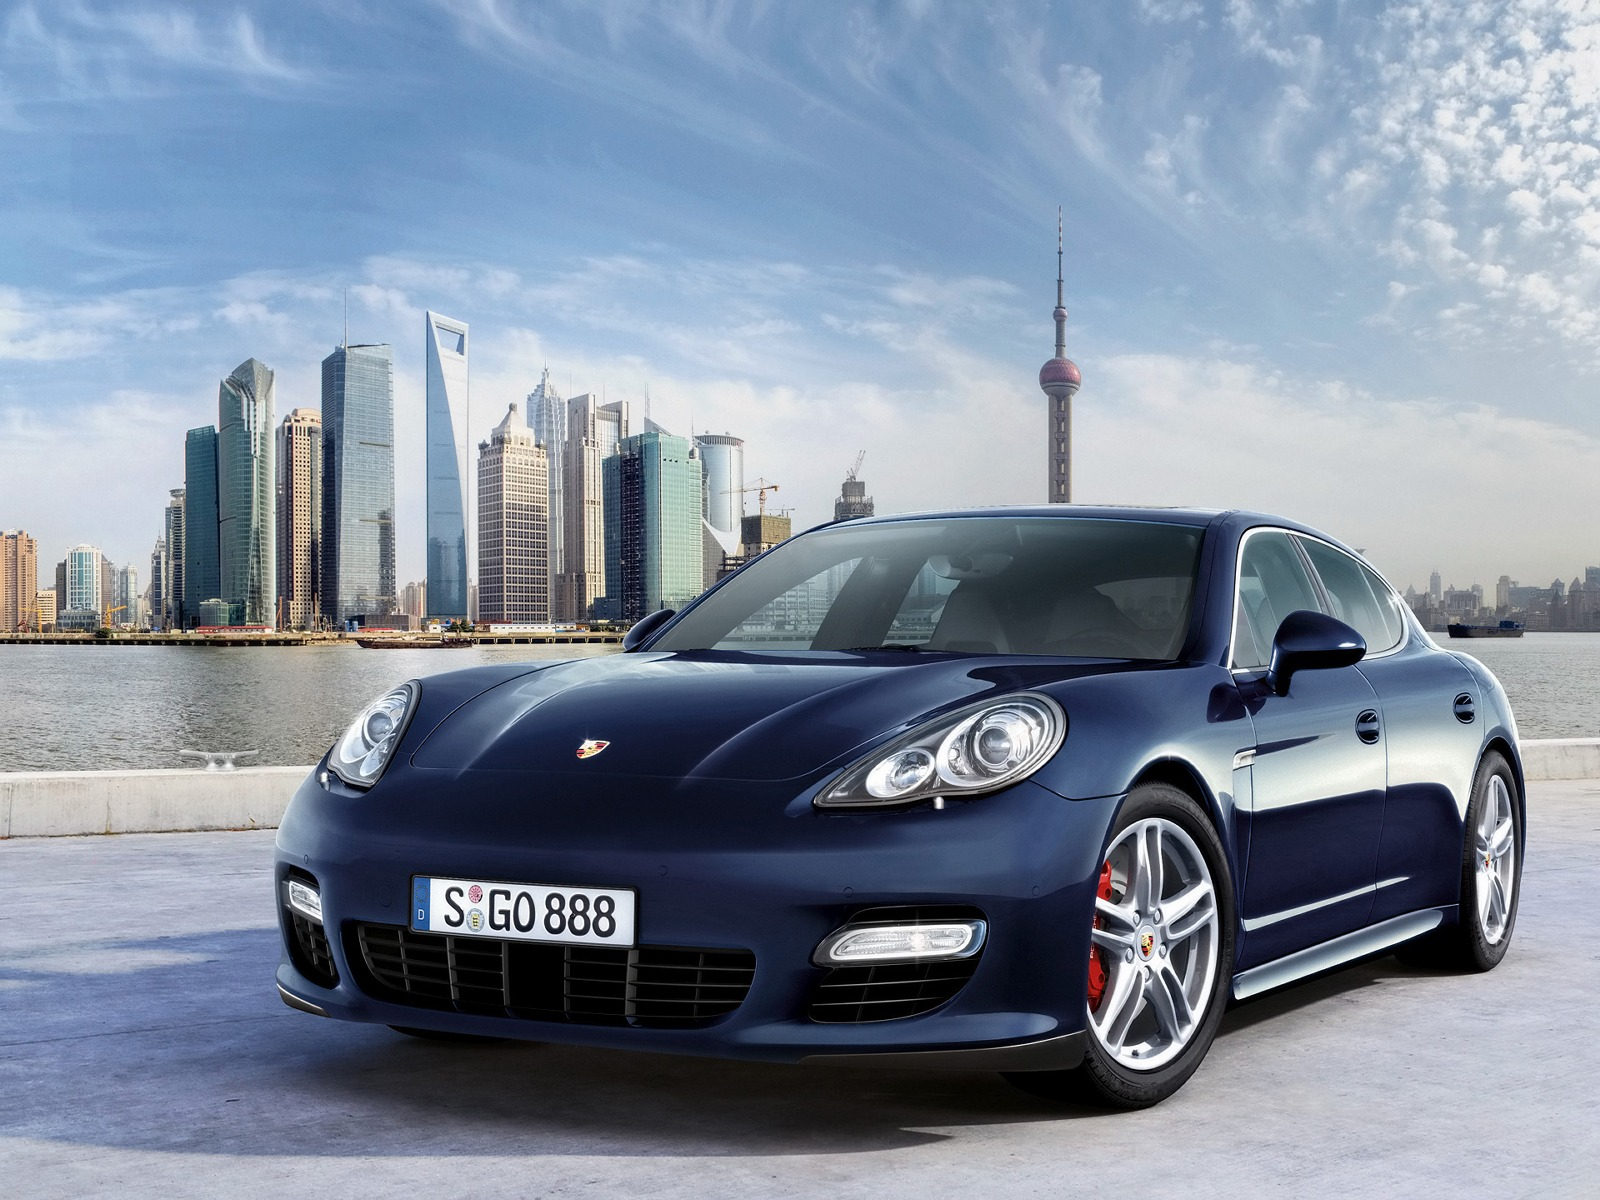 On this page I will discuss about Porsche Panamera Turbo Wallpaper Pictures.